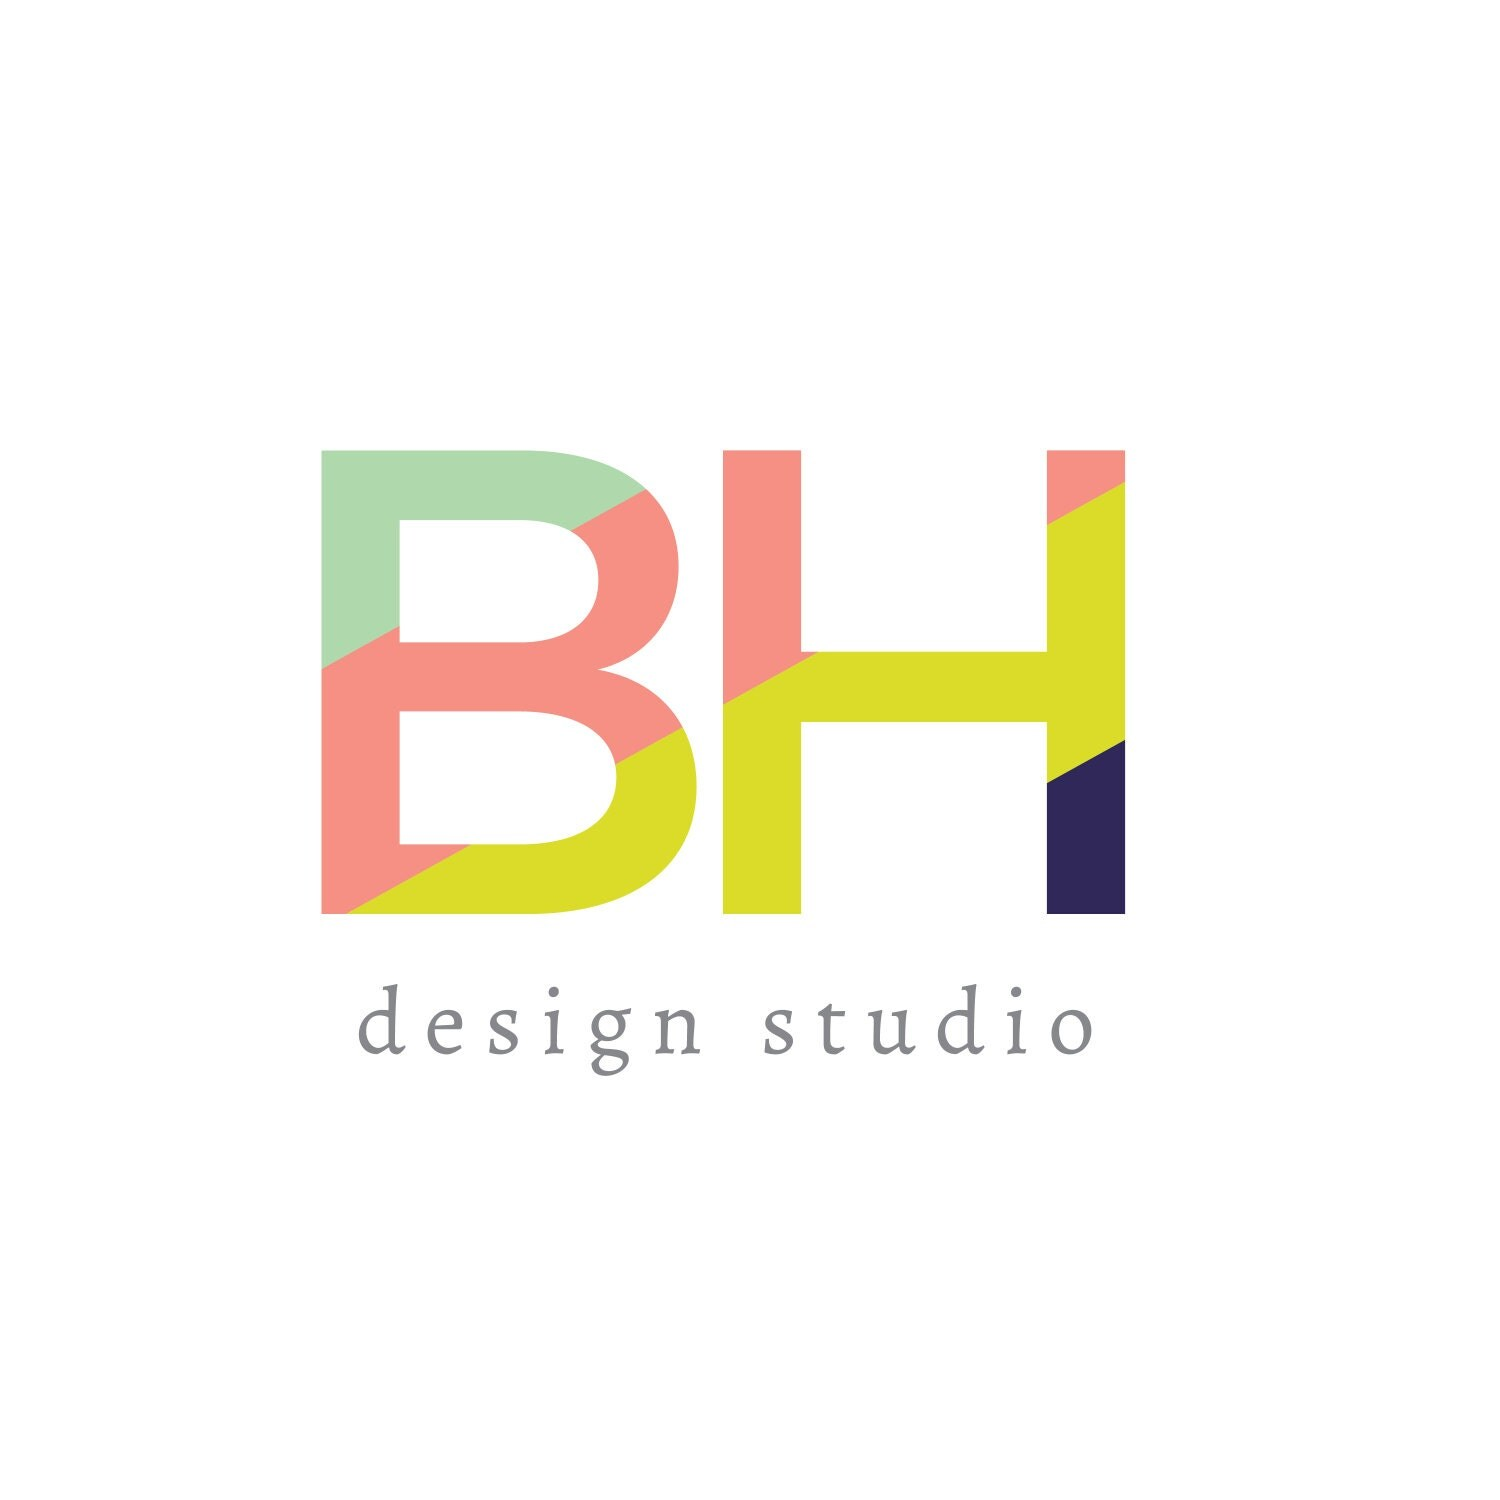 Graphic design business logo